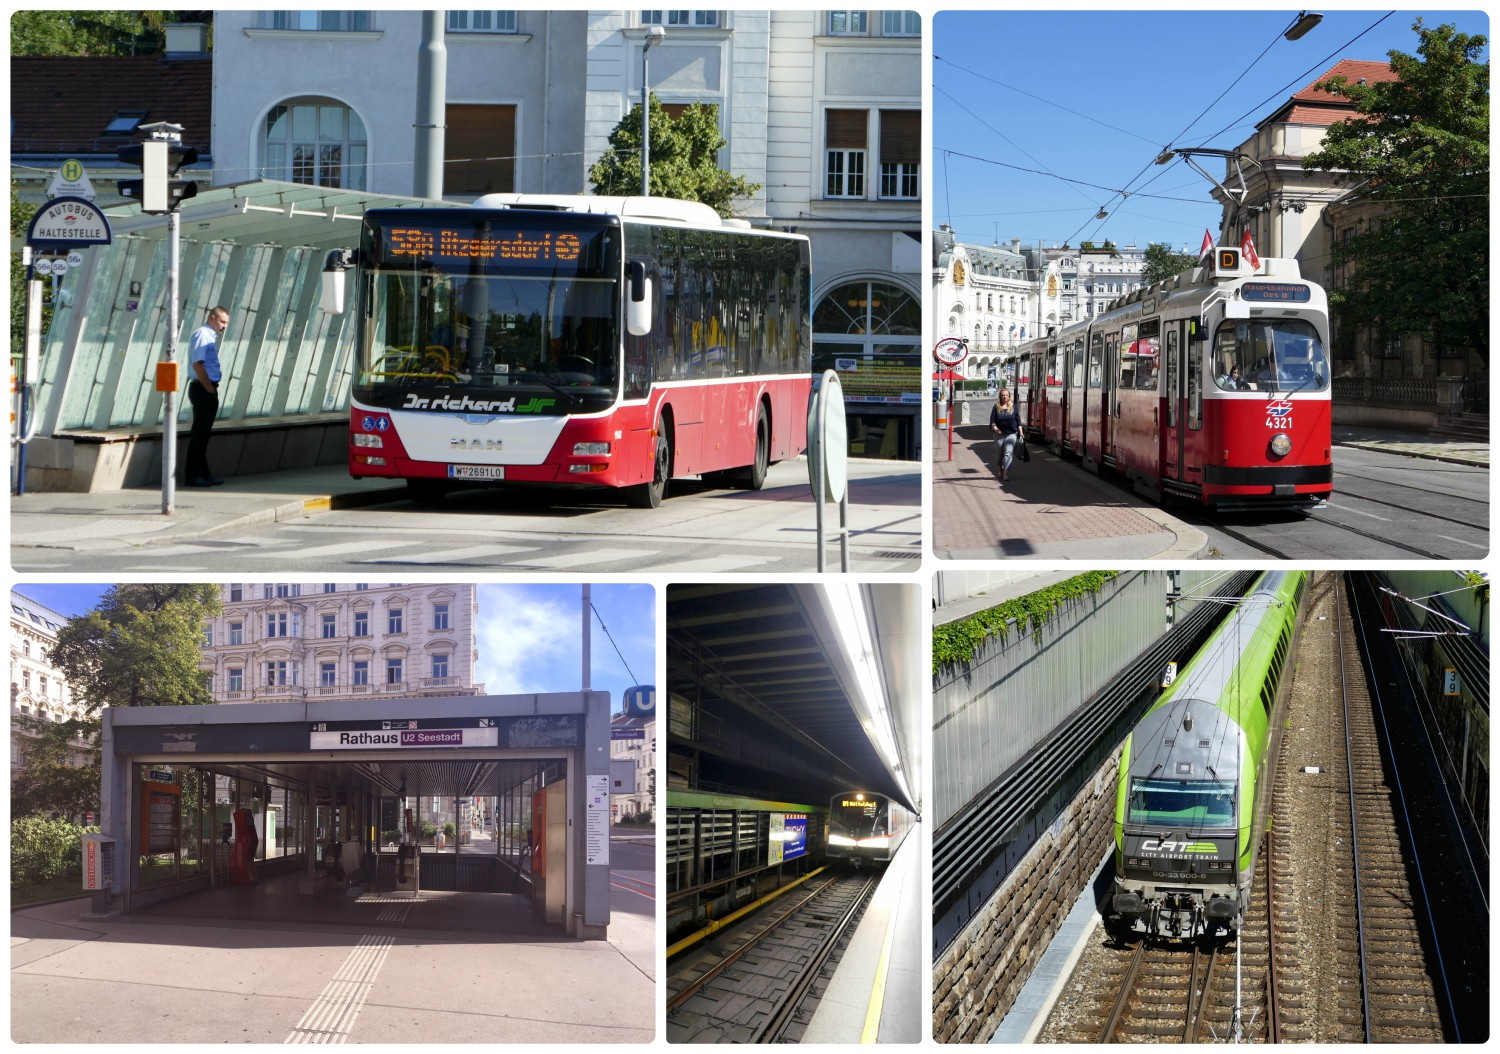 Public transportation includes buses (top left), trams (top right), trains (bottom right), and underground/U-Bahn (bottom middle). The bottom left image is of the entrance to a U-Bahn station.